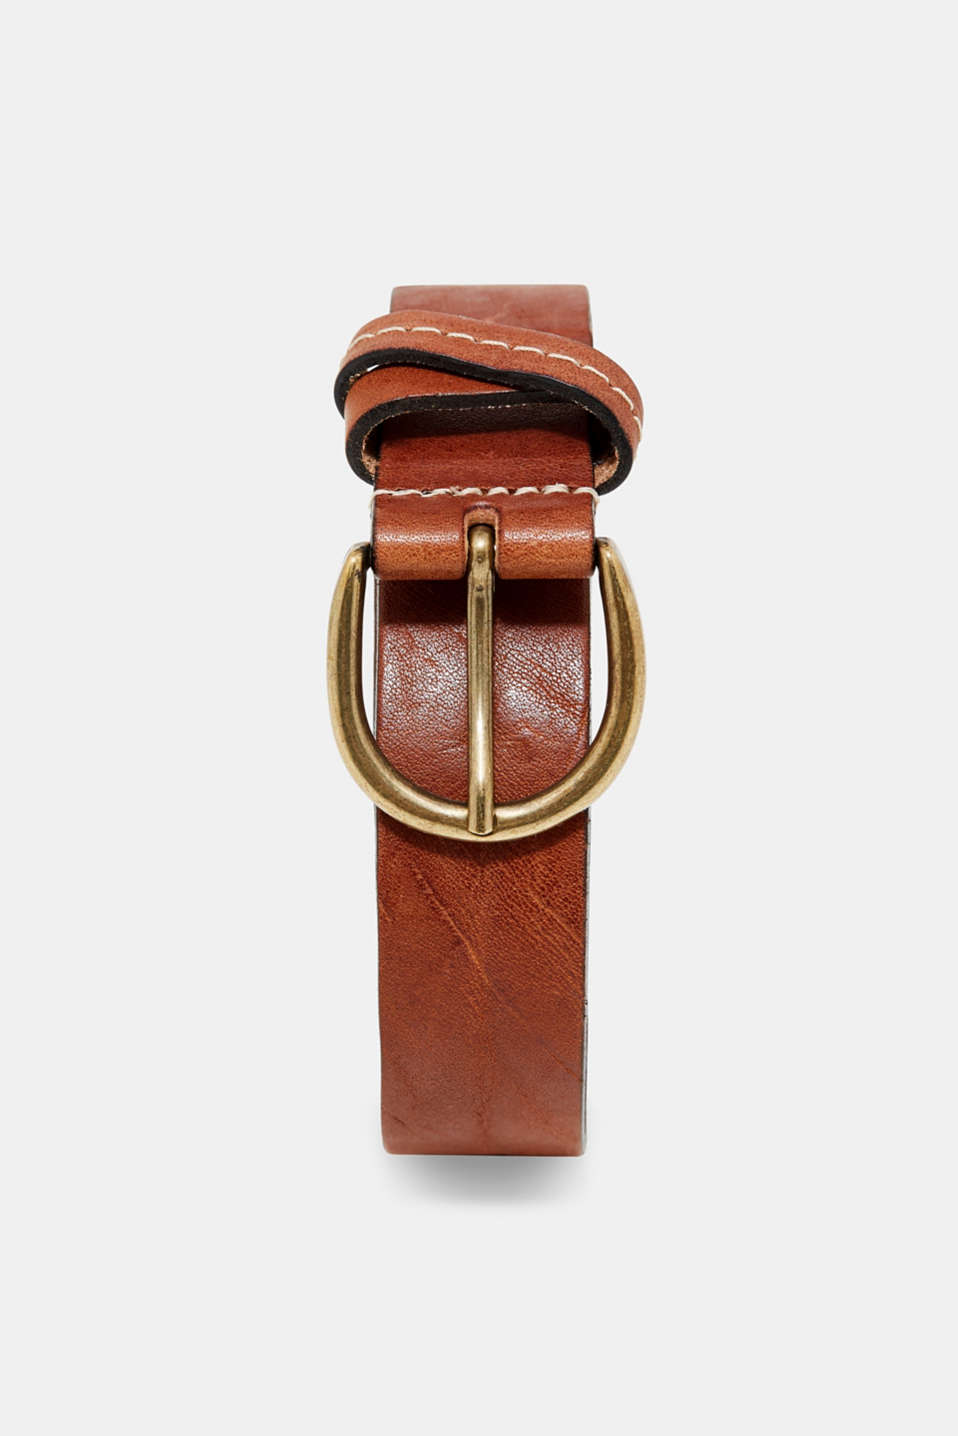 Esprit - Belt with a vintage finish, in leather